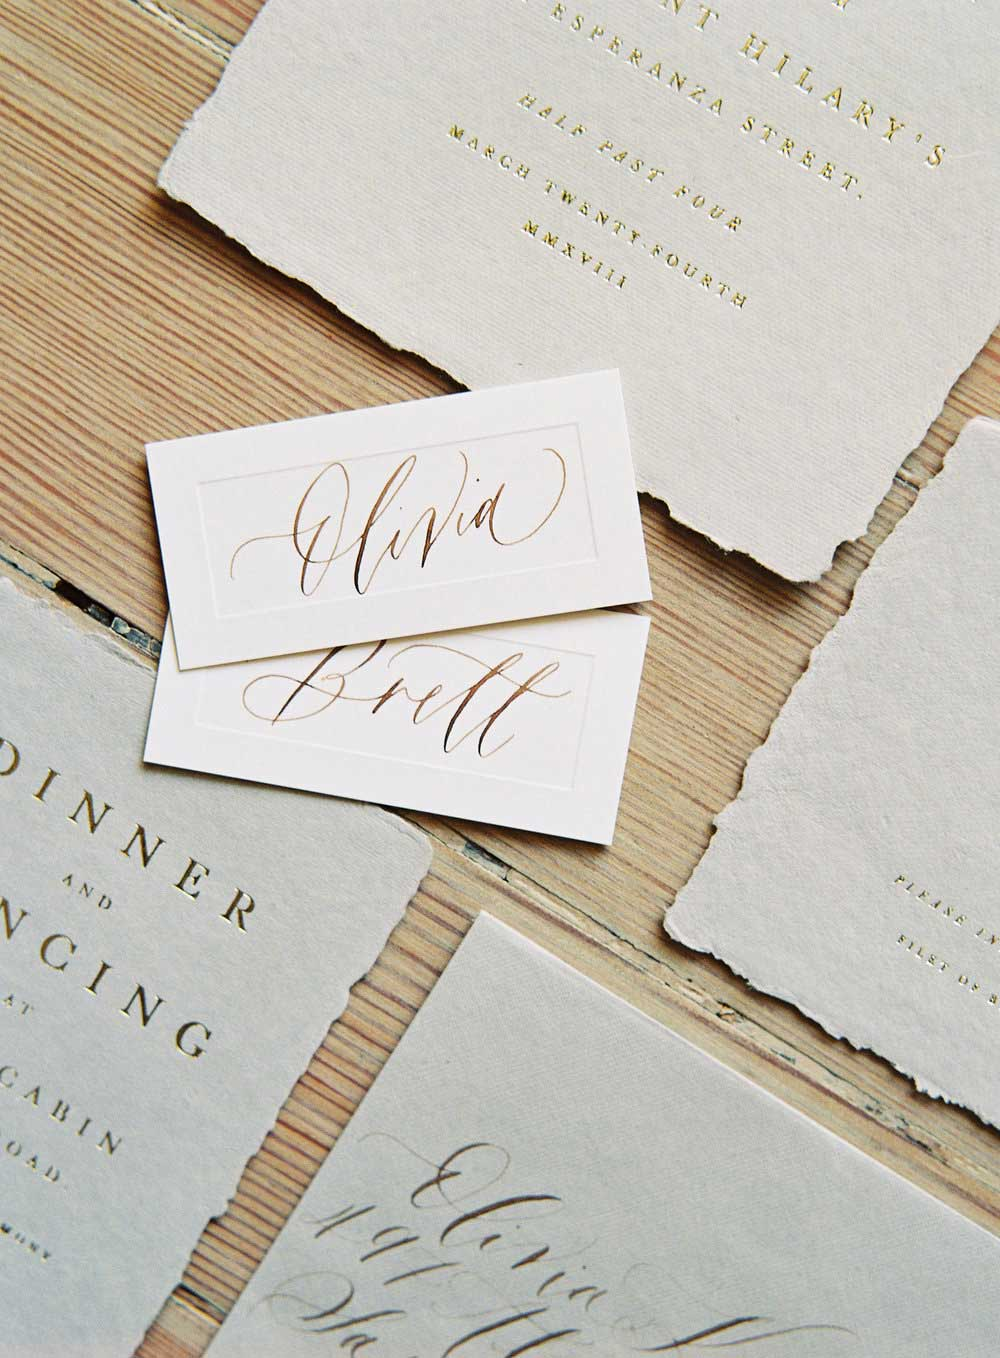 Johannis wedding invitation place cards with calligraphy.